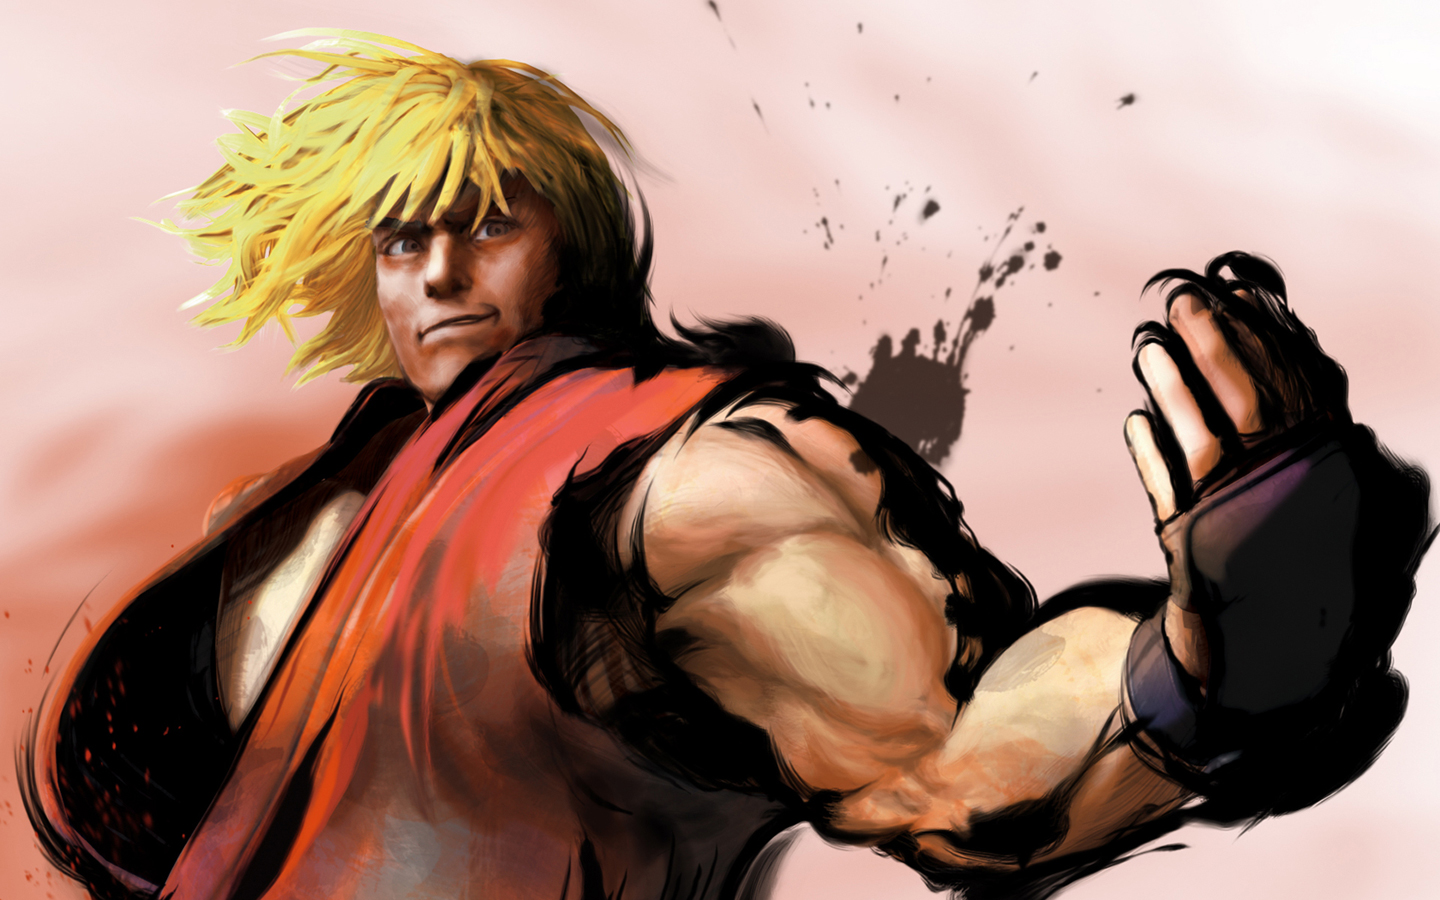 ken street fighter wallpaper - photo #18